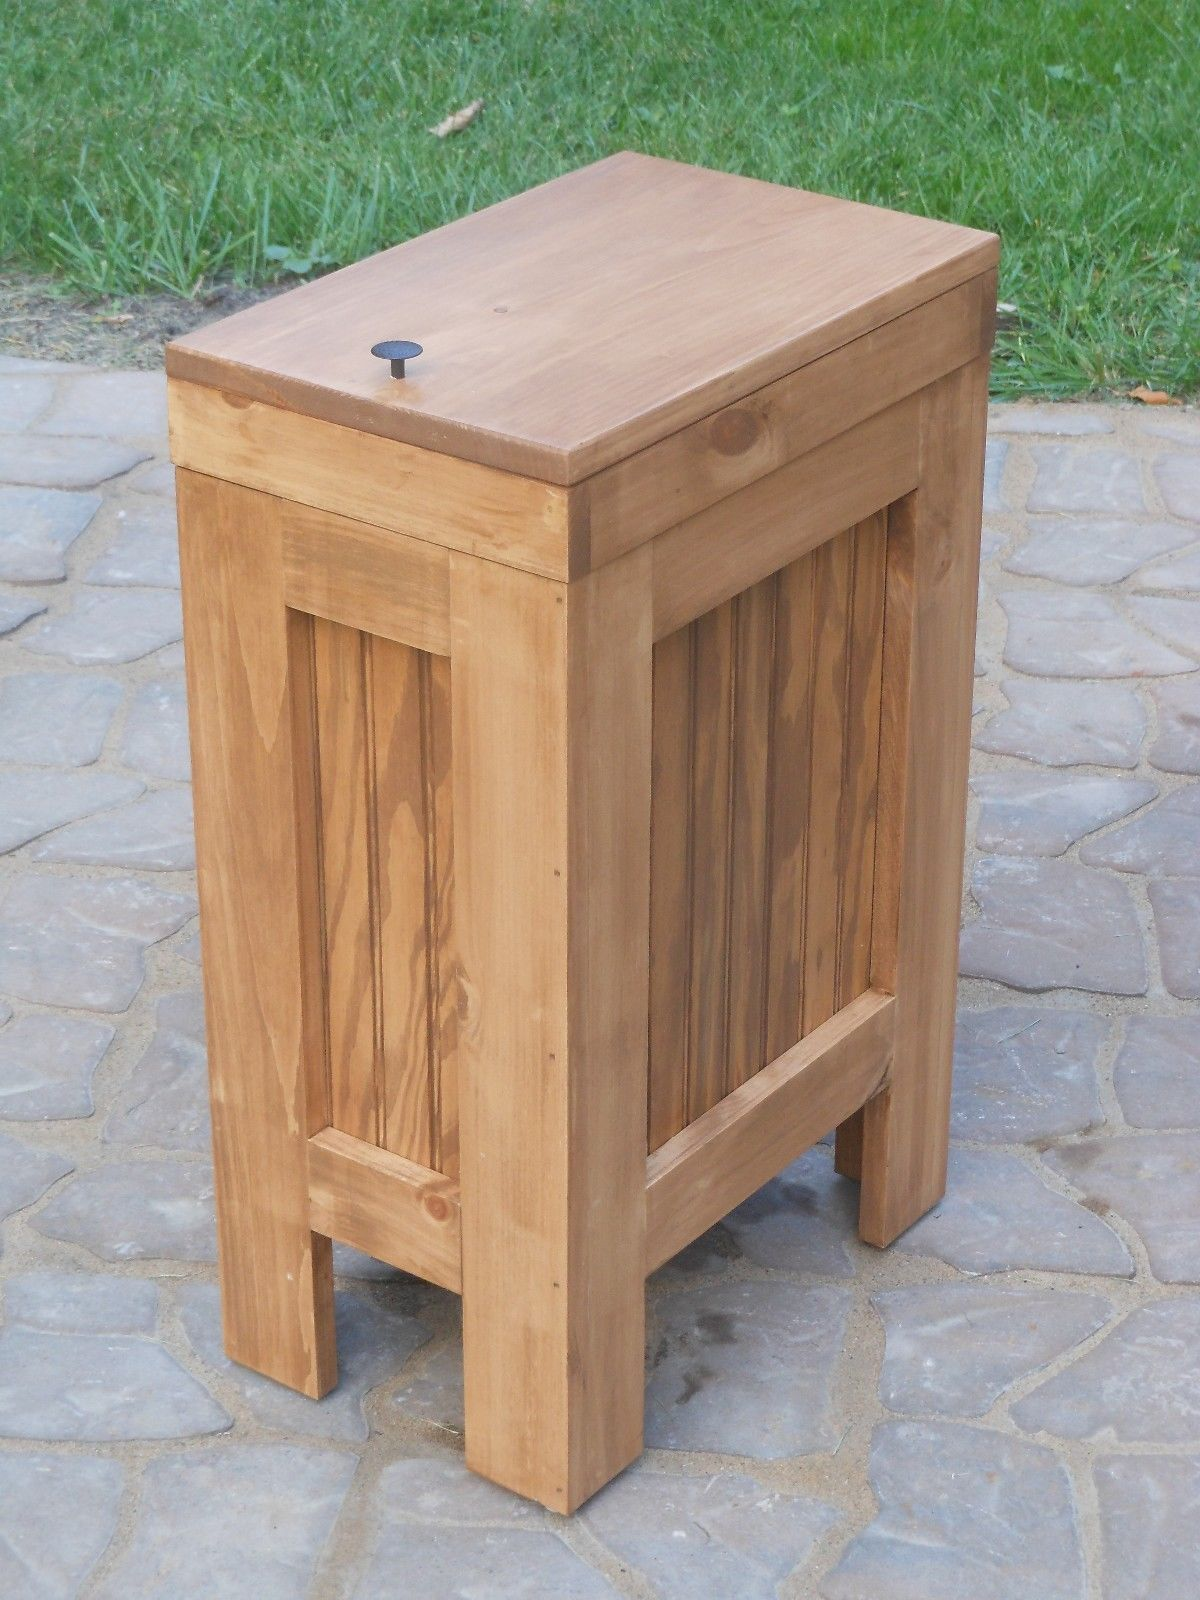 small recycling bins for kitchen replacement doors cabinets wood wooden trash can wastebasket bin